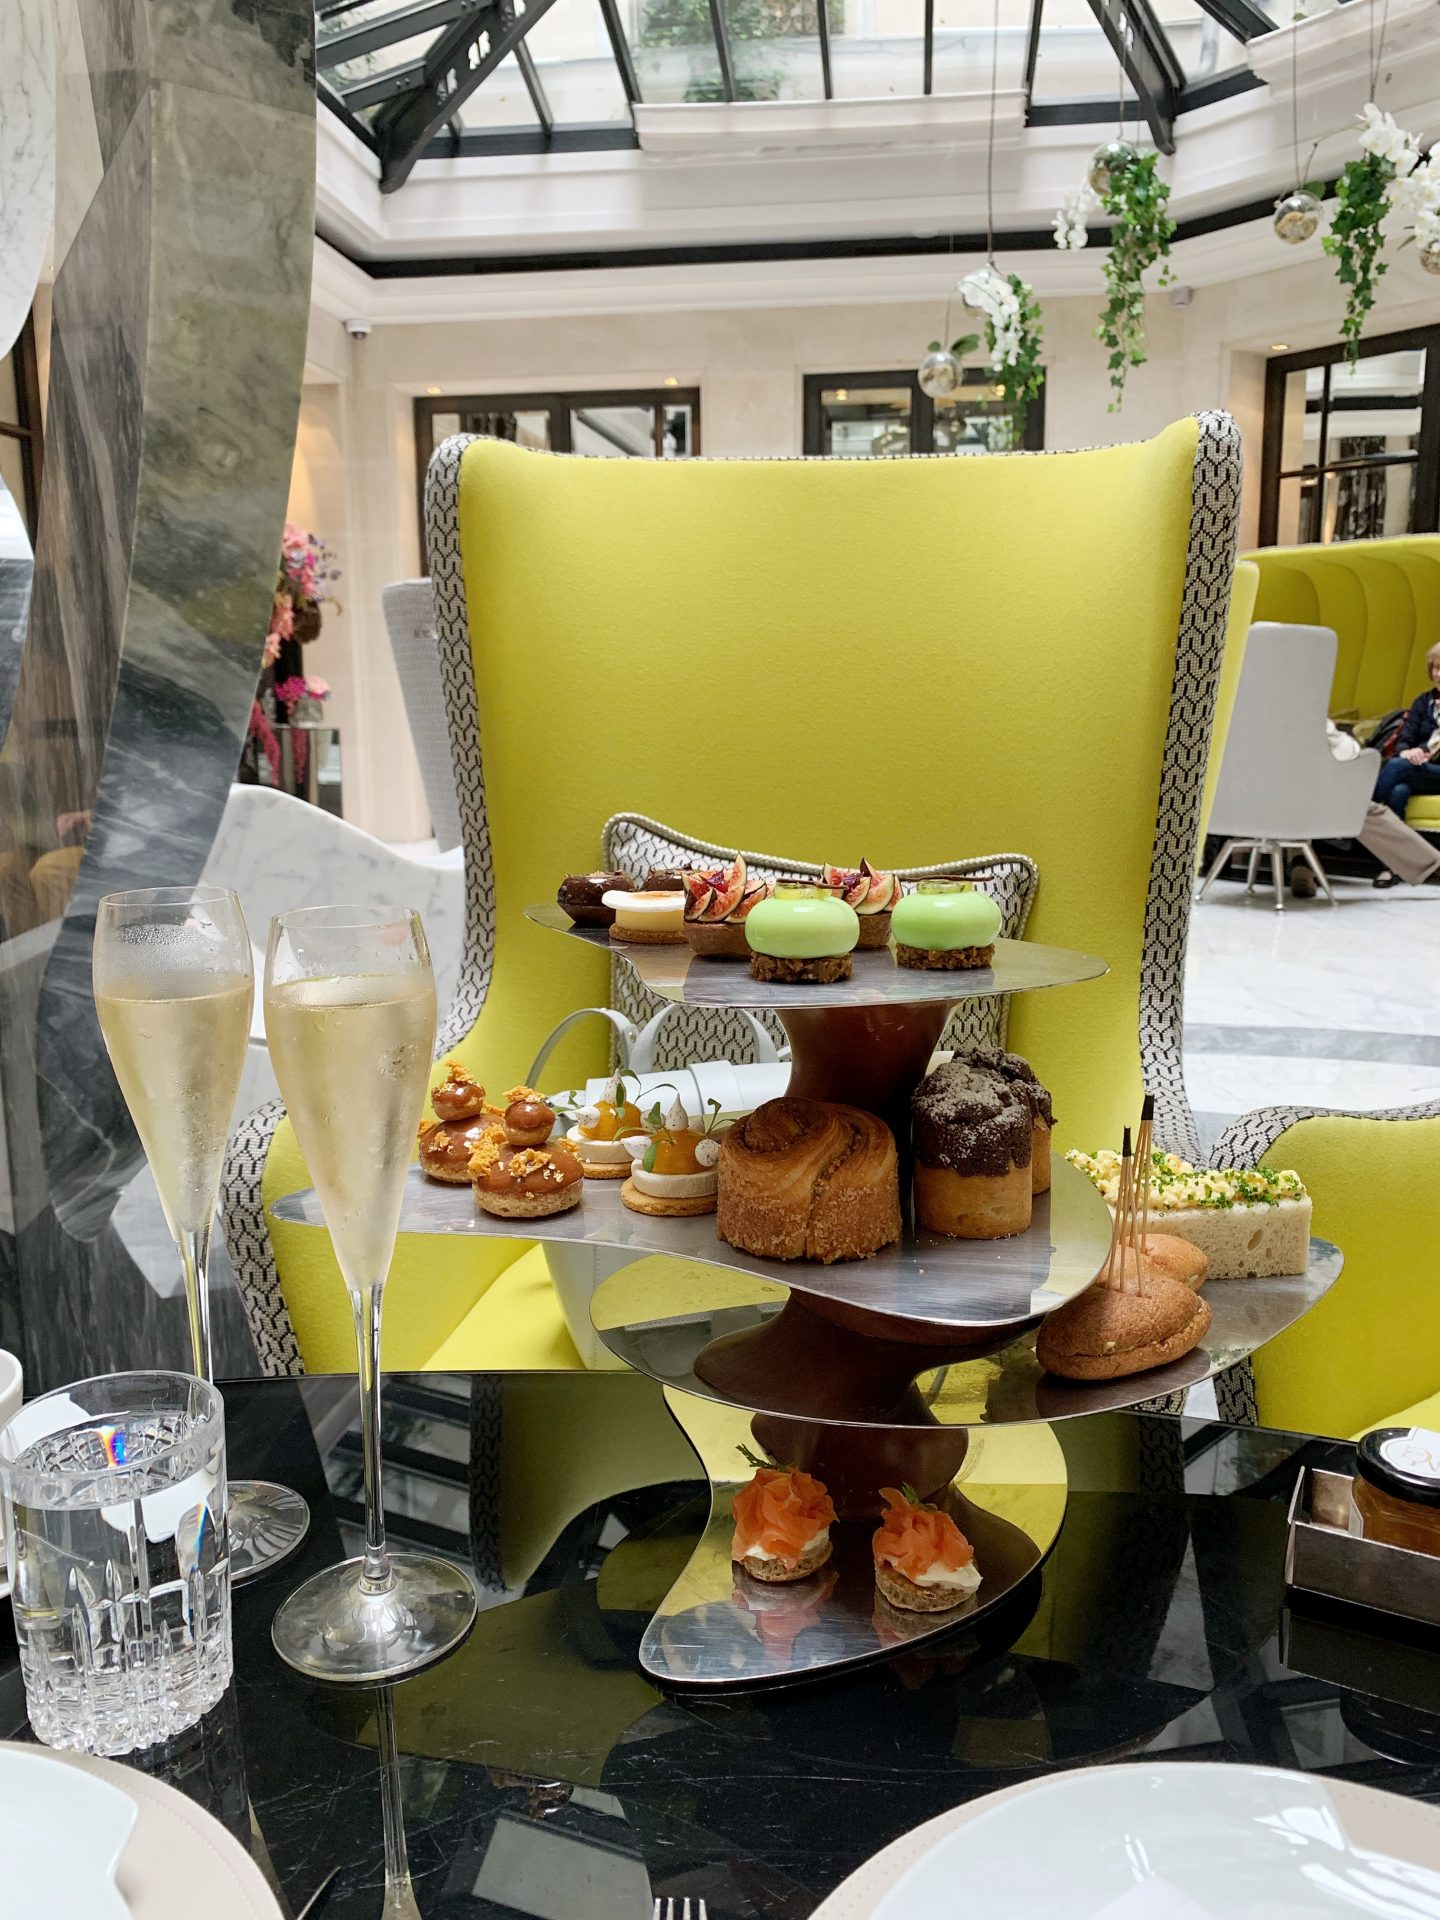 Hotel Le Burgundy Afternoon Tea